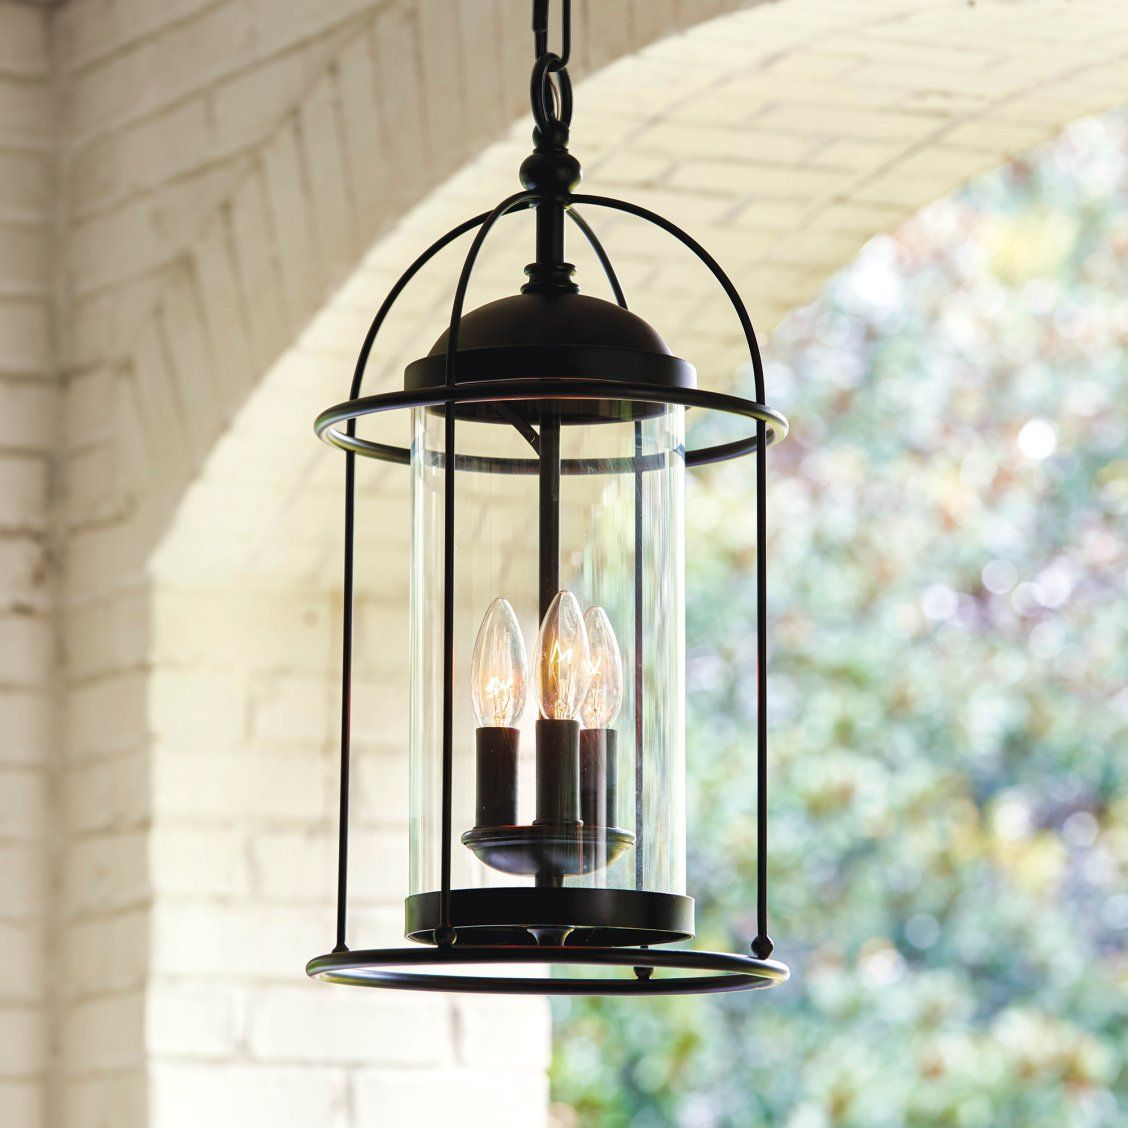 Verano Pendant Outdoor Light Fixture Outdoor Light Fixtures Light Fixtures Outdoor Pendant